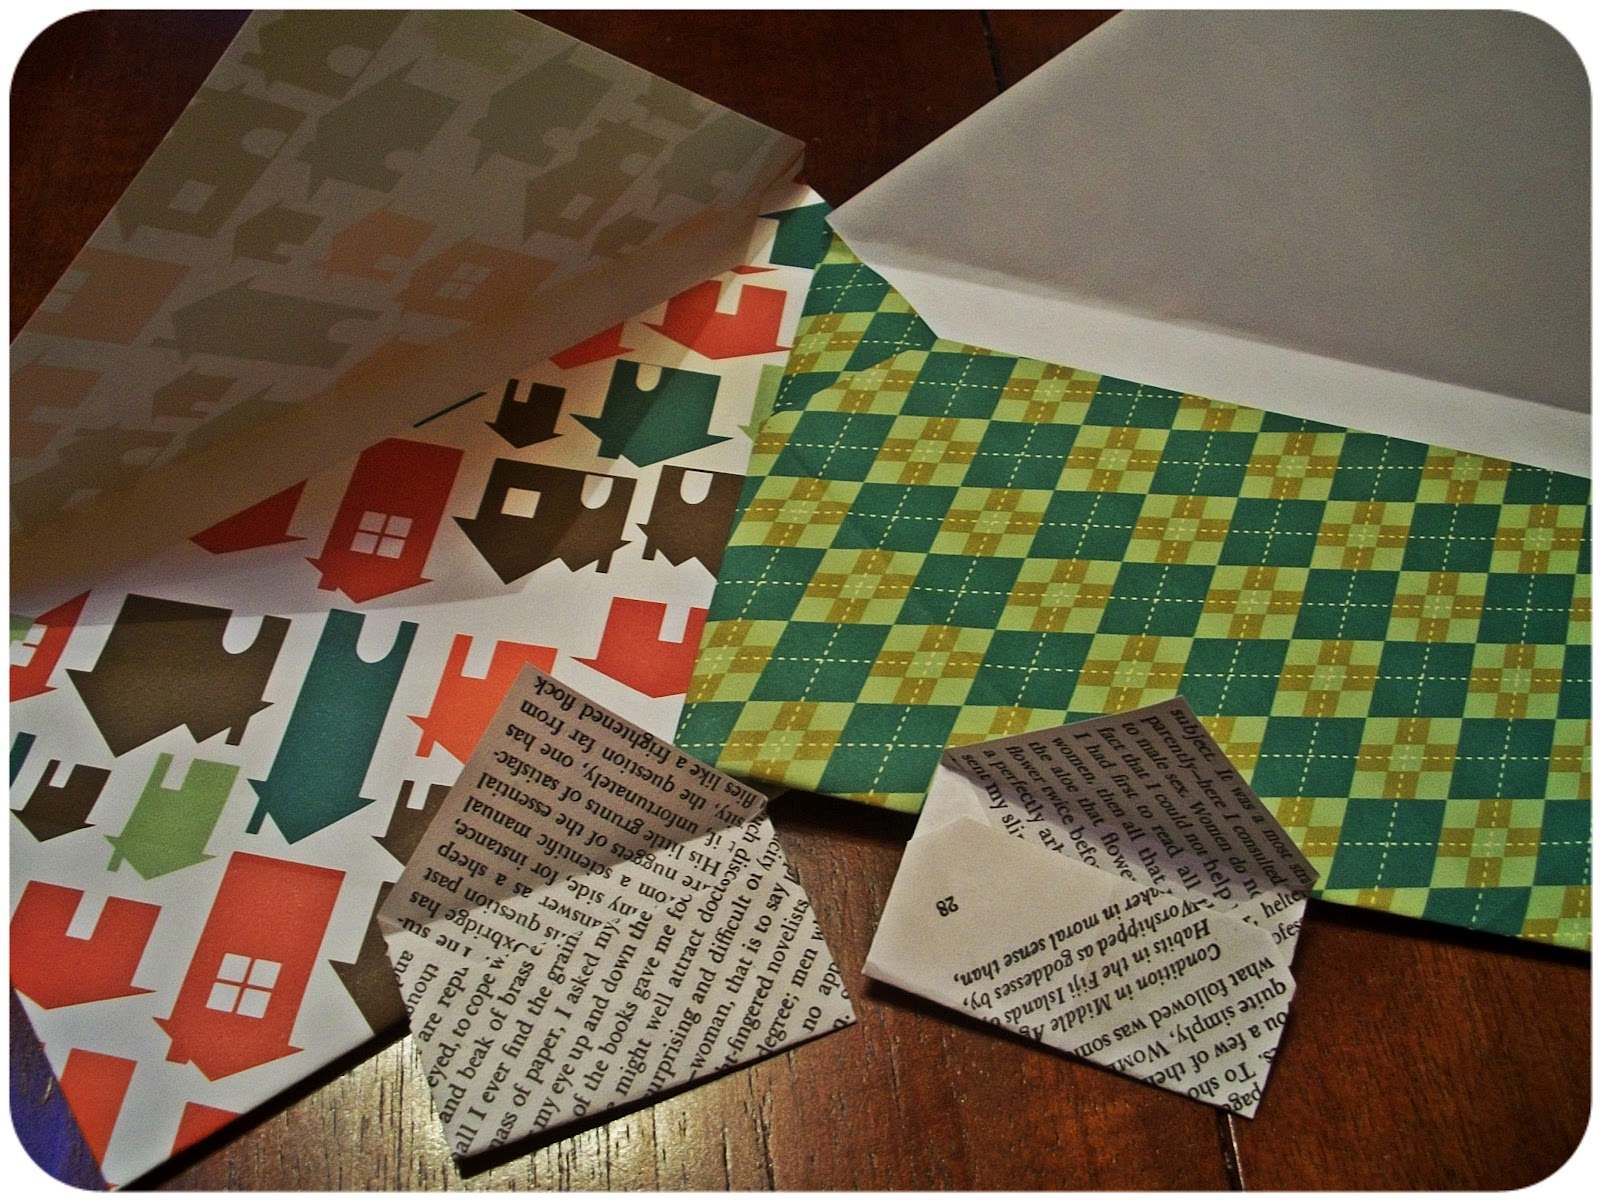 How to delete scrapbook photos google+ - I Feel Like If You Get A Letter With An Exciting Envelope Then The Letter Inside Is Bound To Be Exciting Too D I Learned How To Make Envelopes Ages Ago